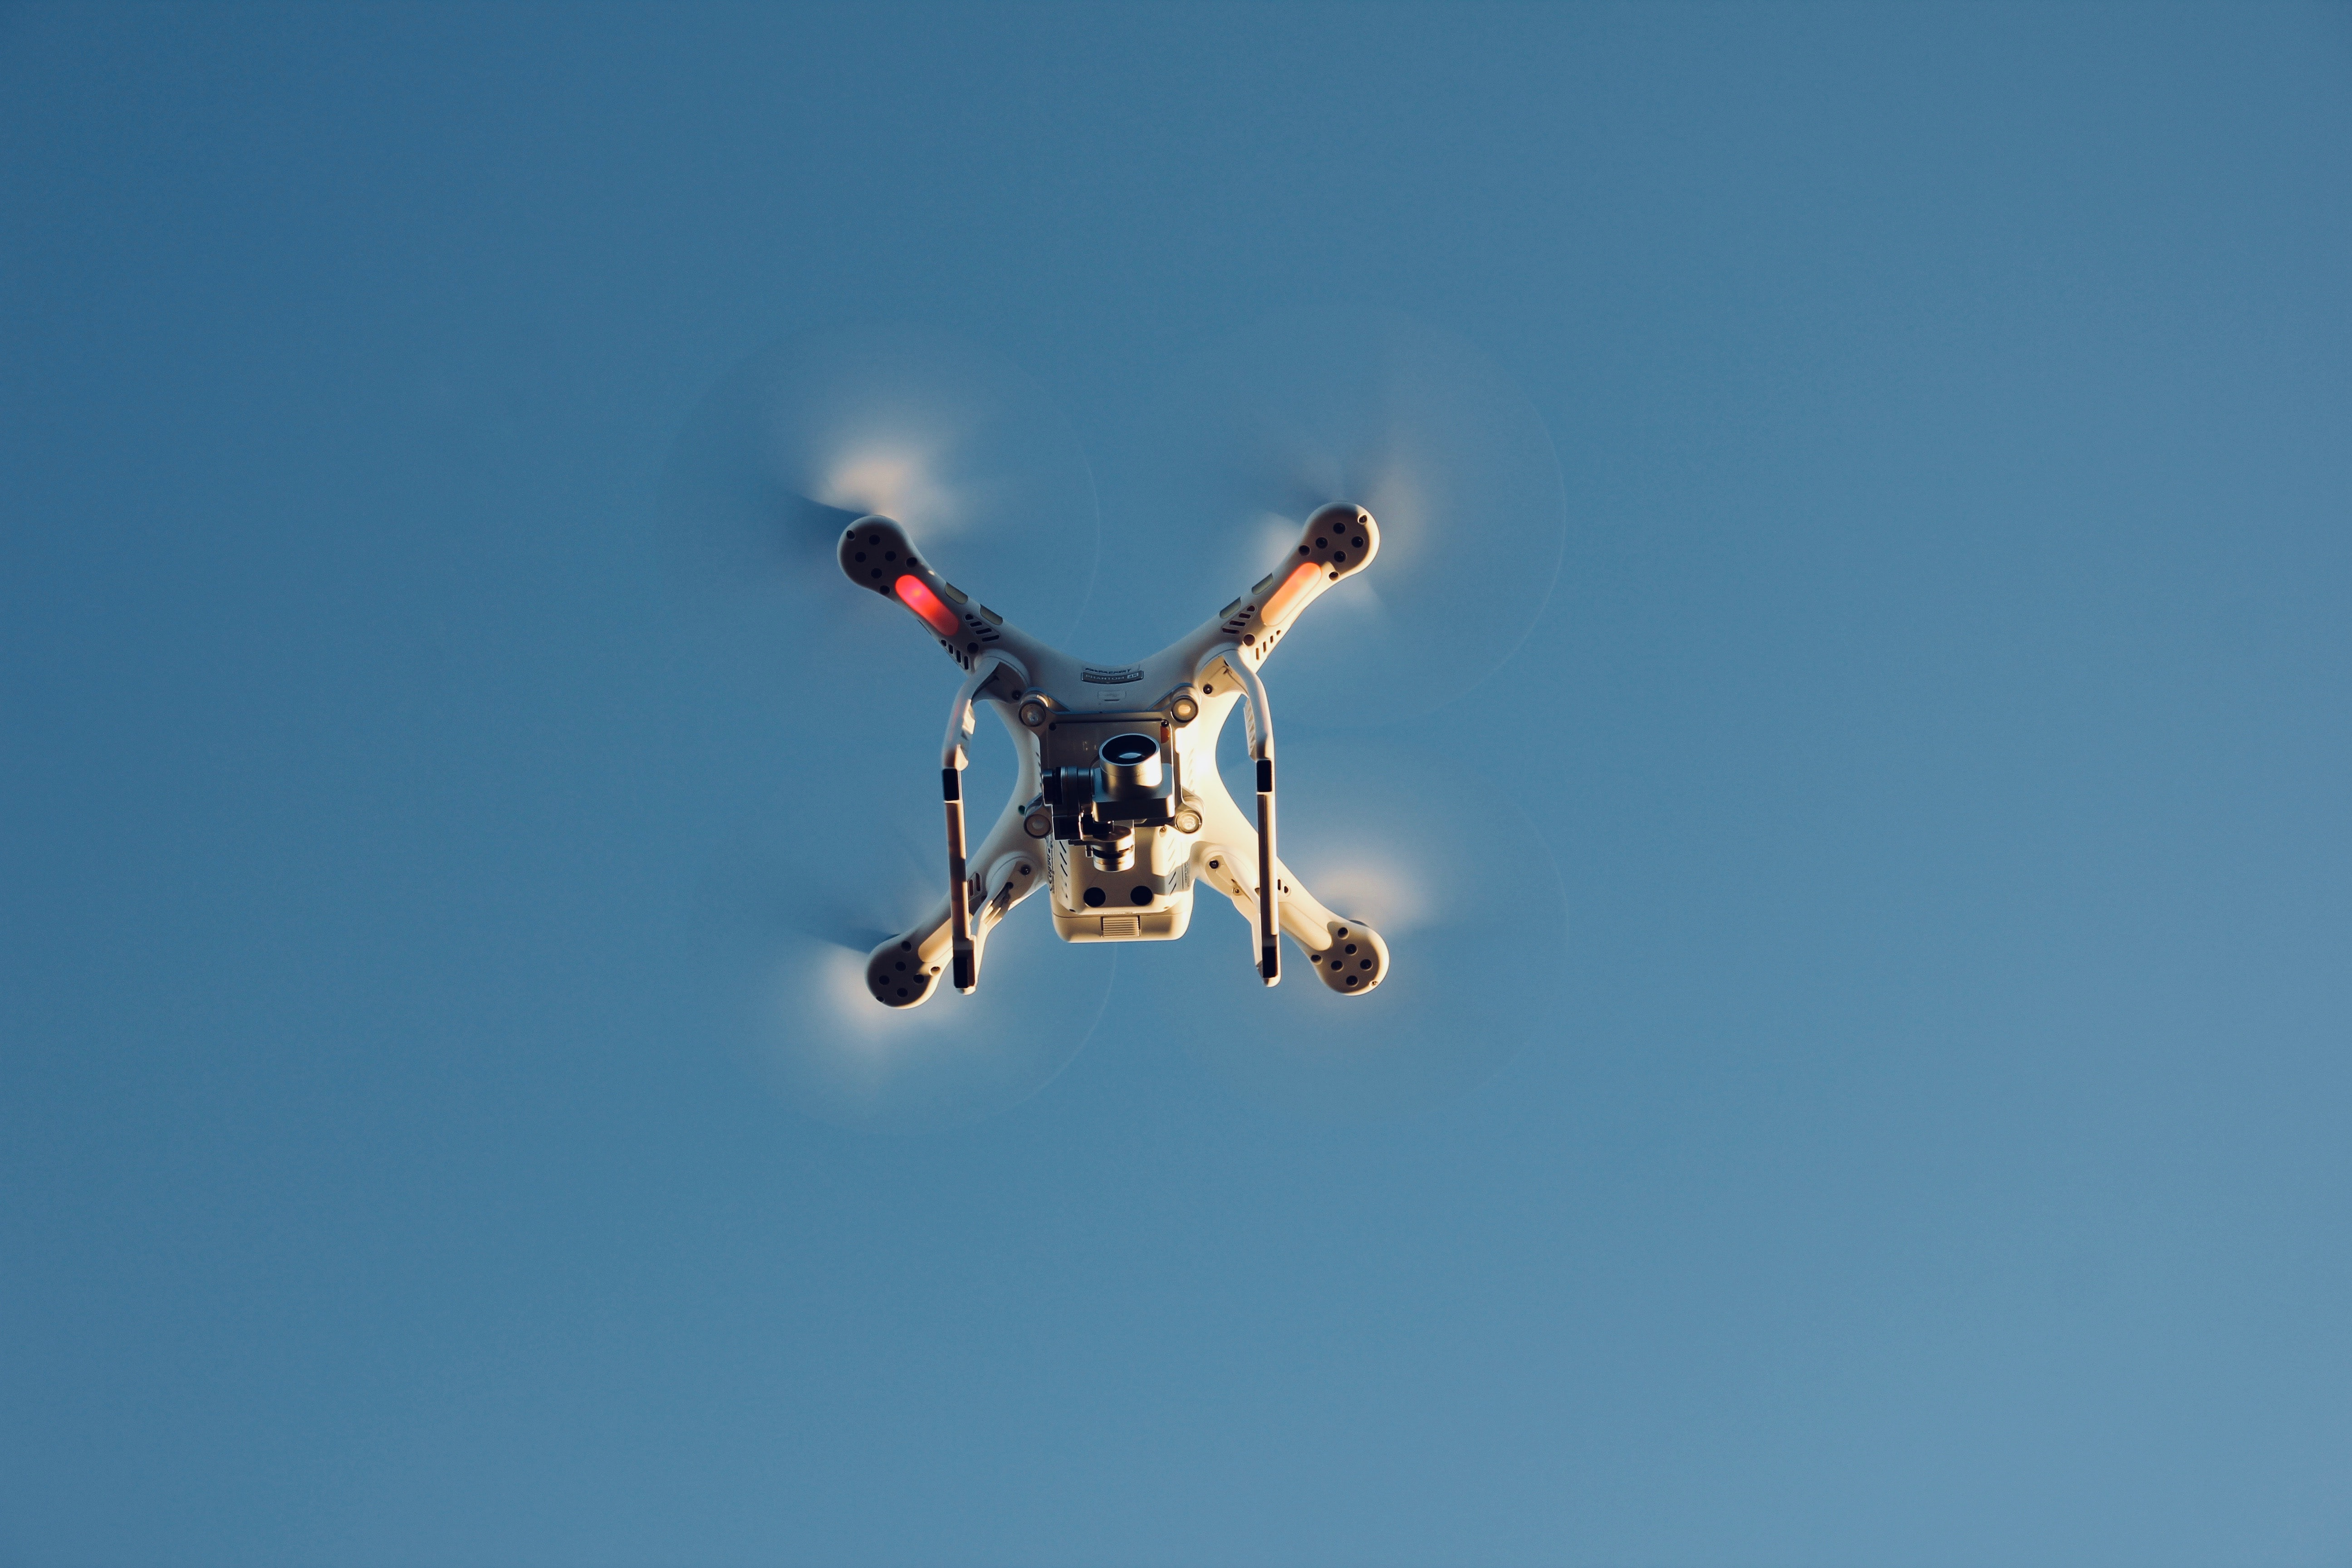 low angle photography of RC quadcopter at mid air